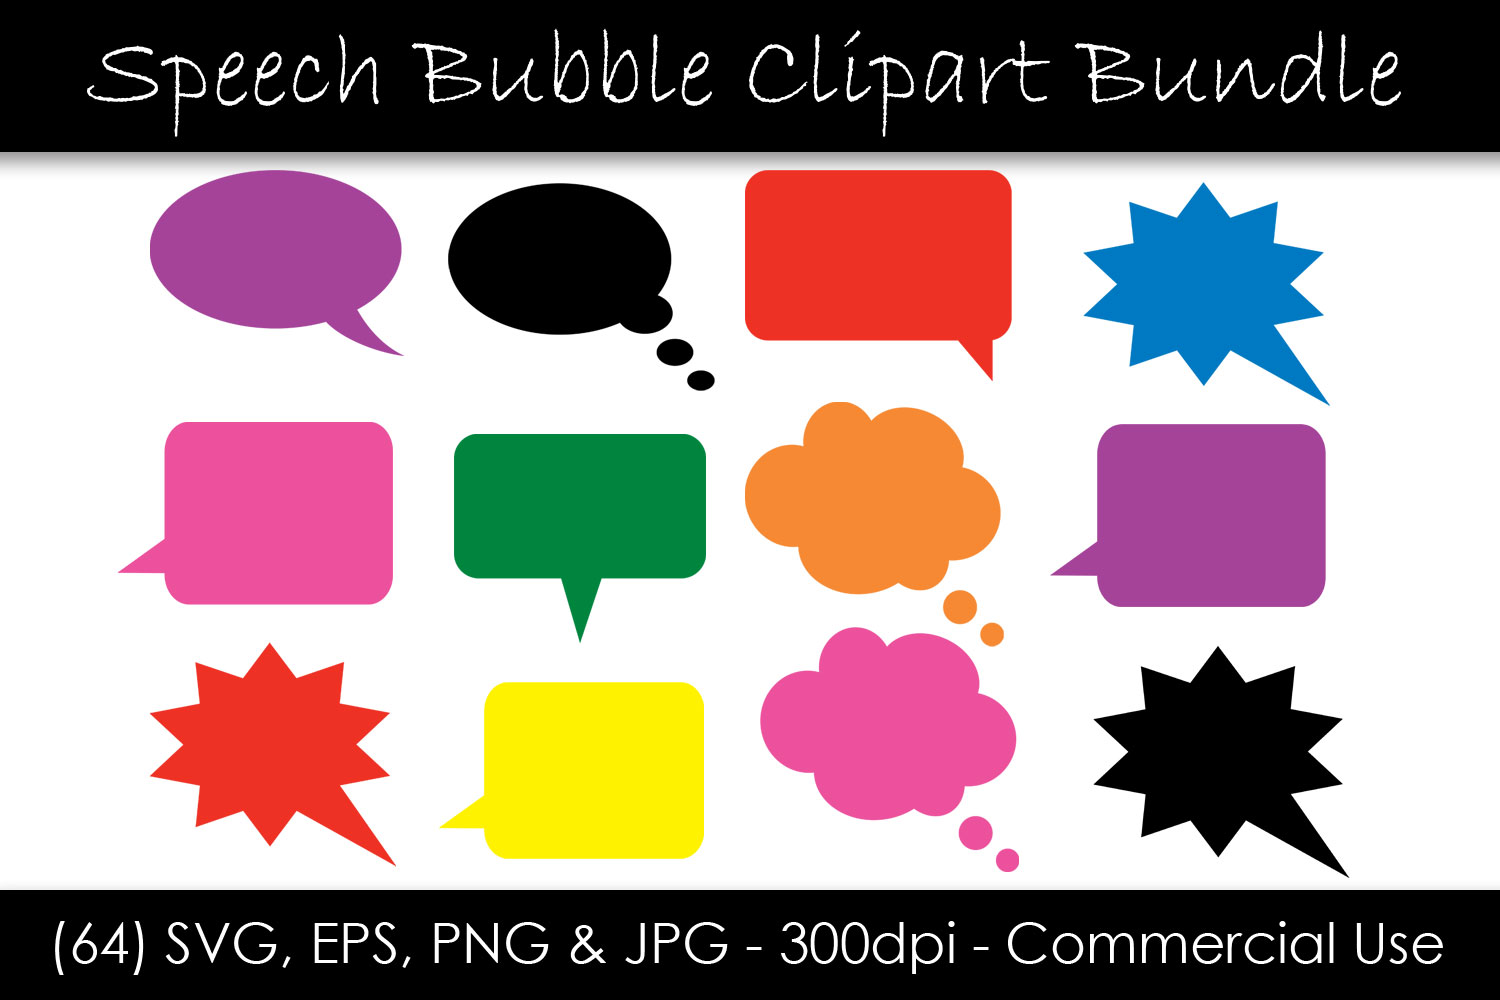 Download Free Speech Bubble Clipart Solid Colors Graphic By Gjsart for Cricut Explore, Silhouette and other cutting machines.